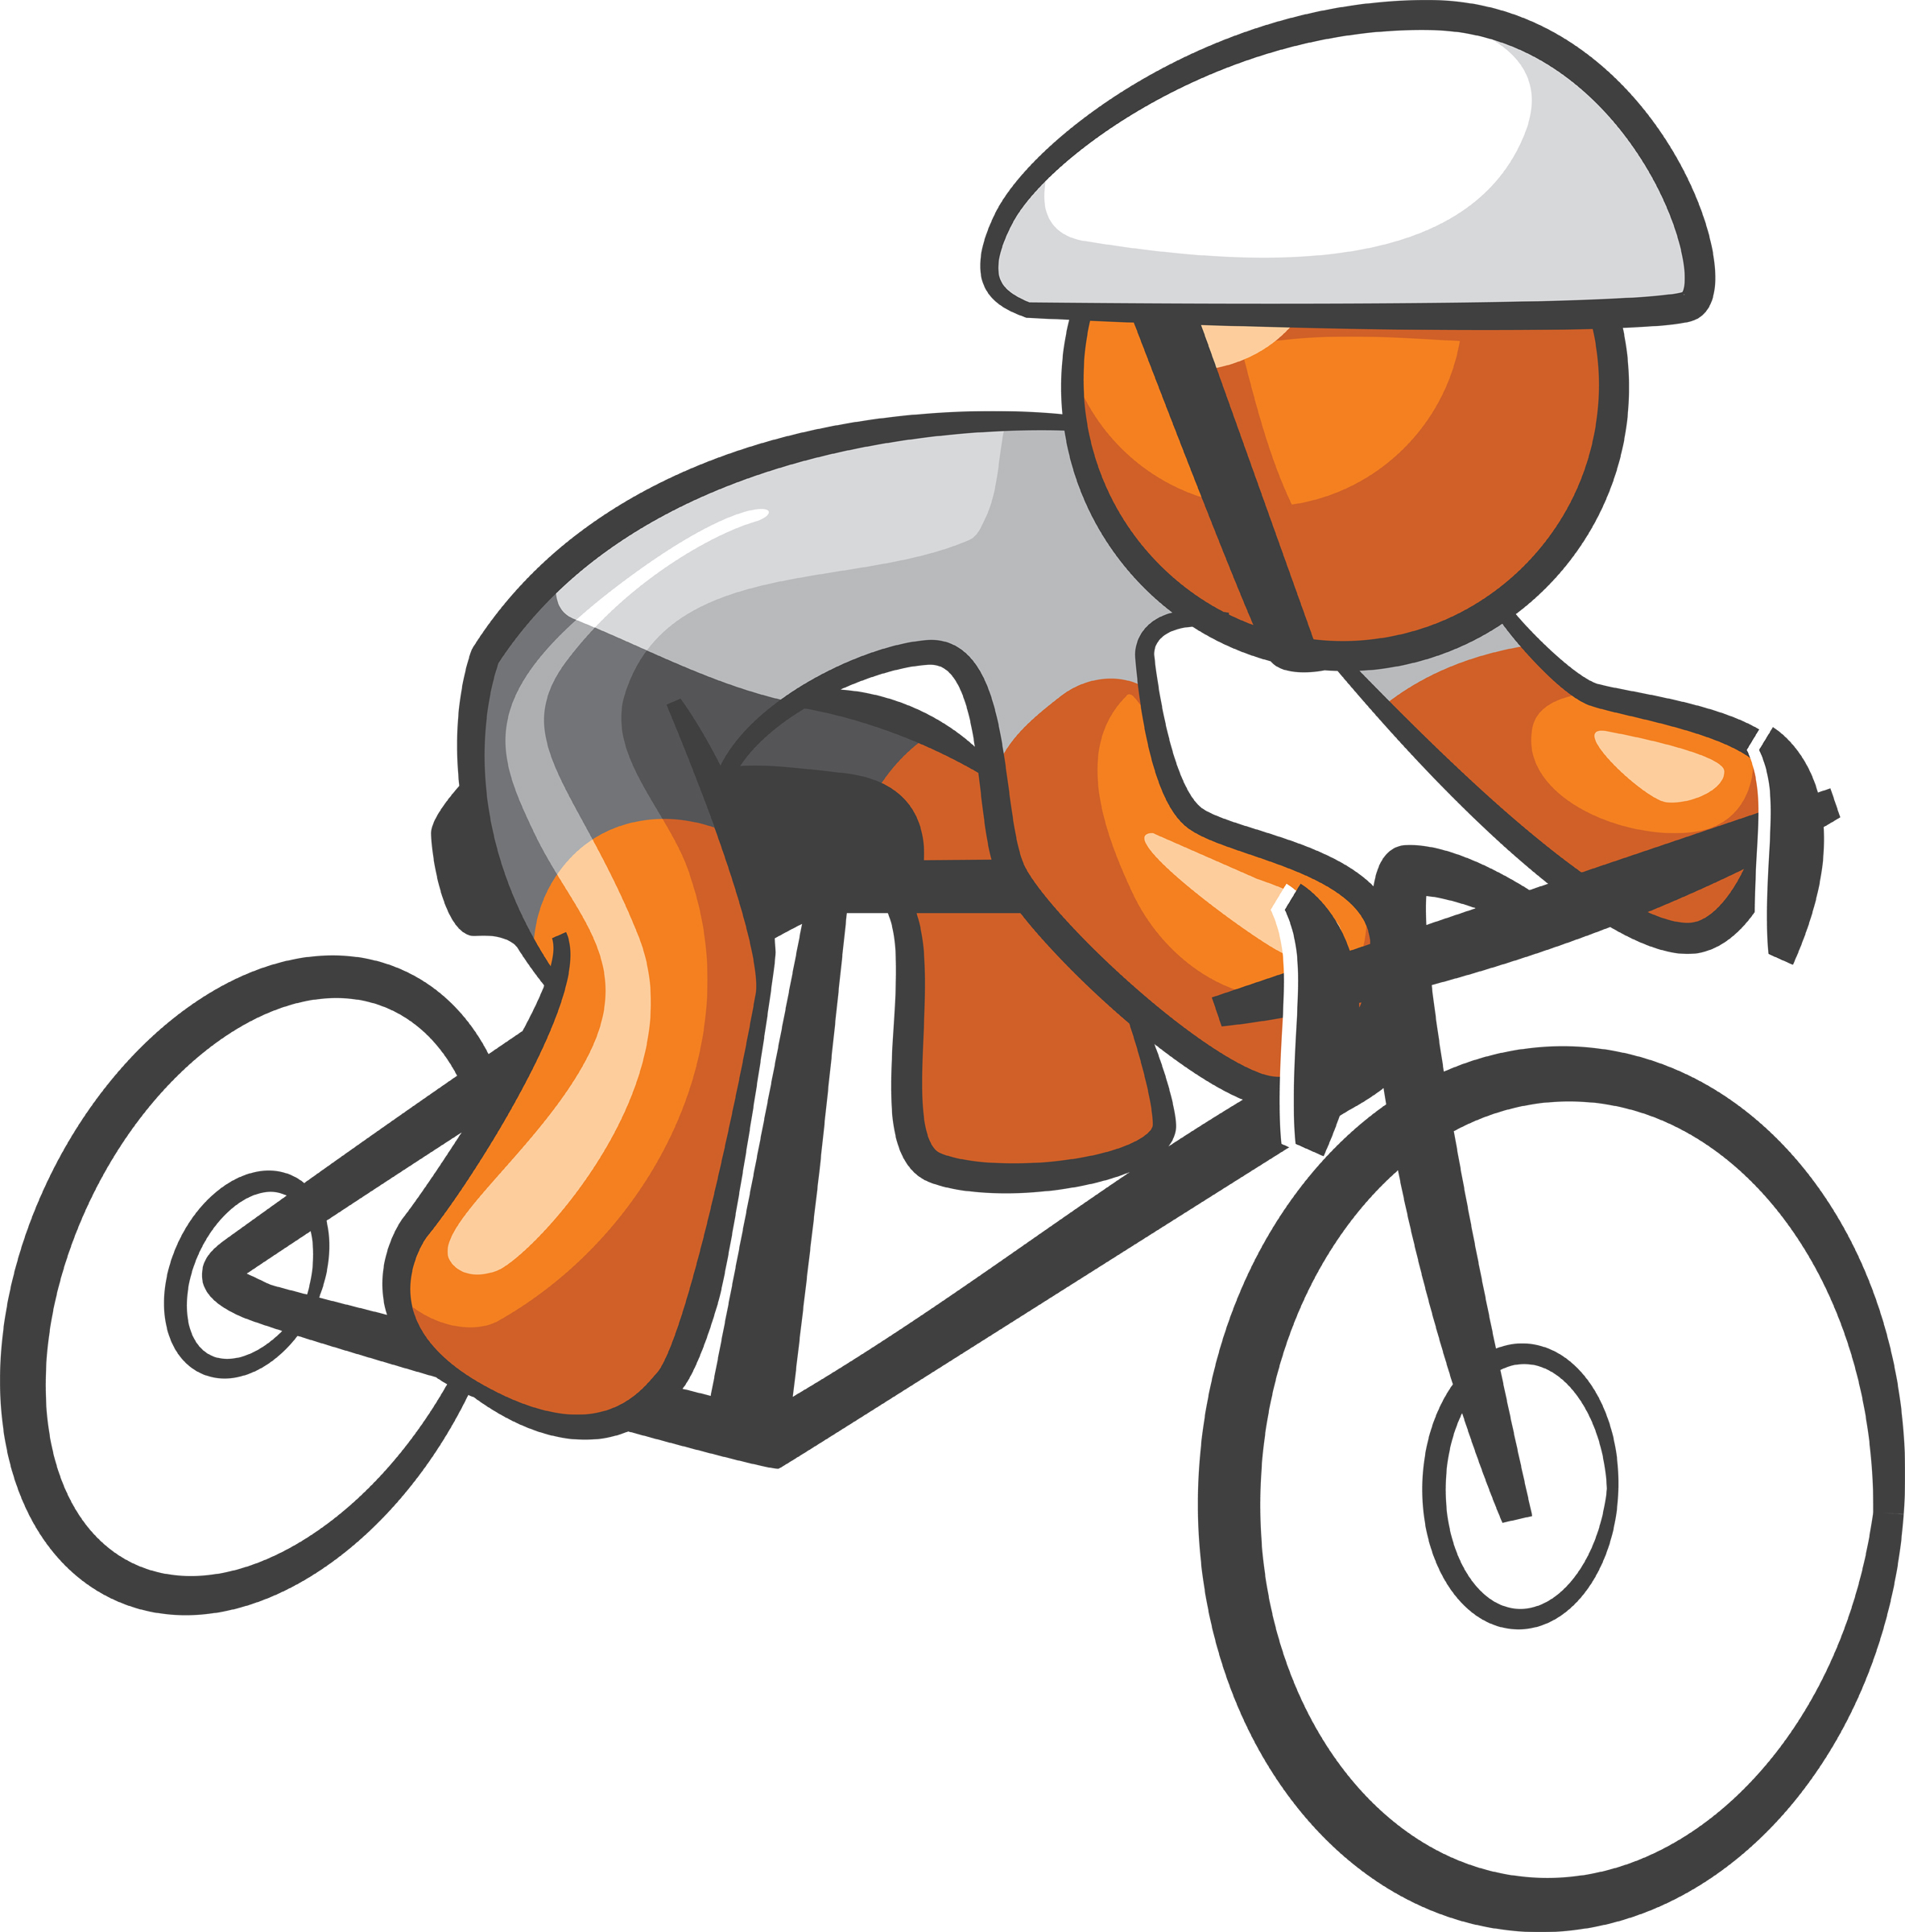 Shape america bicycle curriculum. Bike clipart physical activity